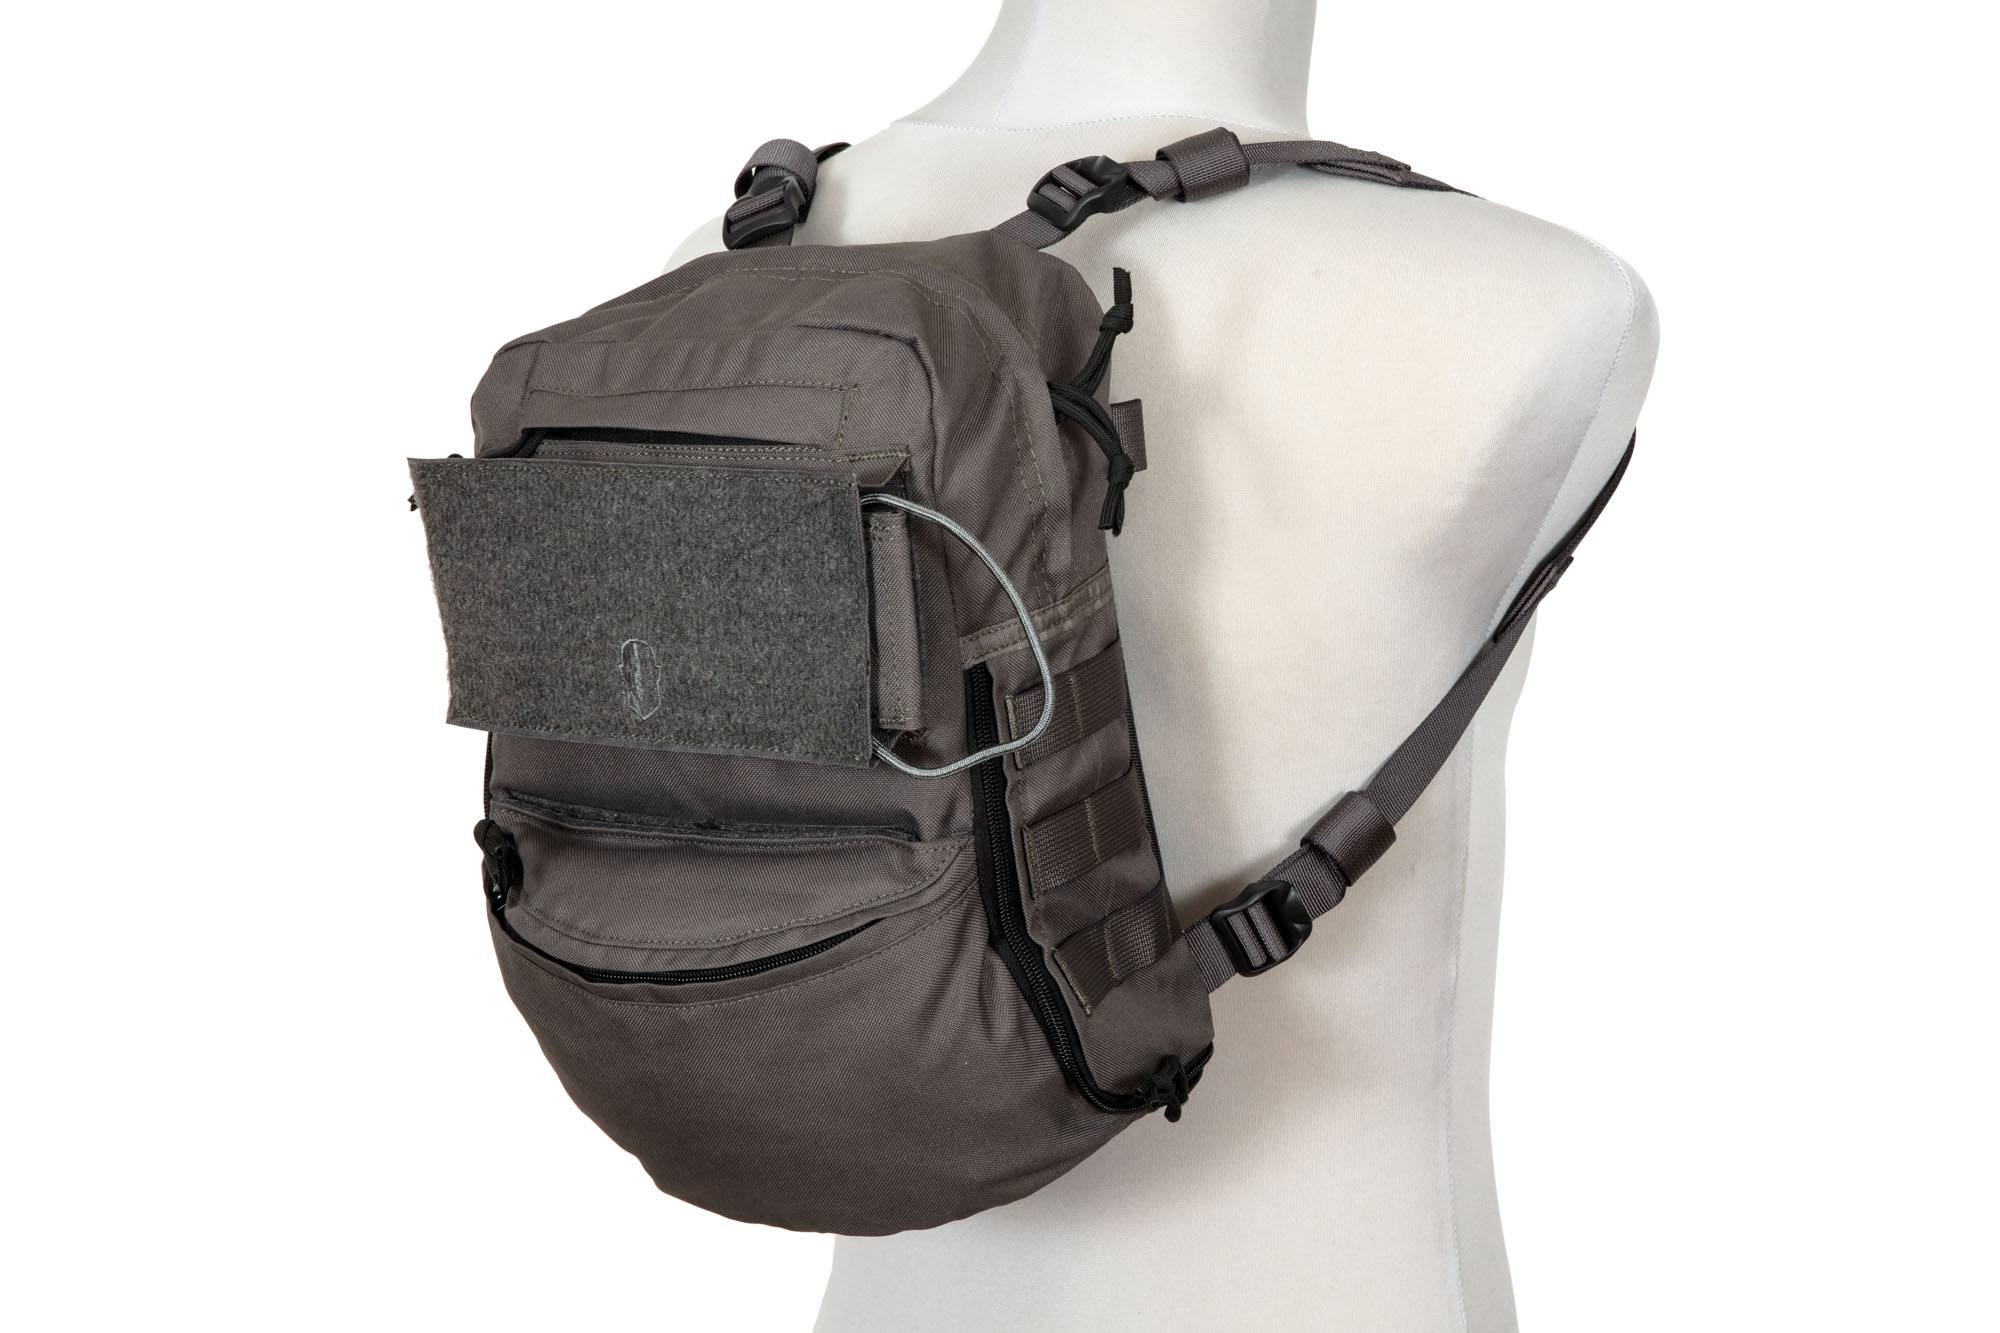 SPARTAN FLAT BAG GREY